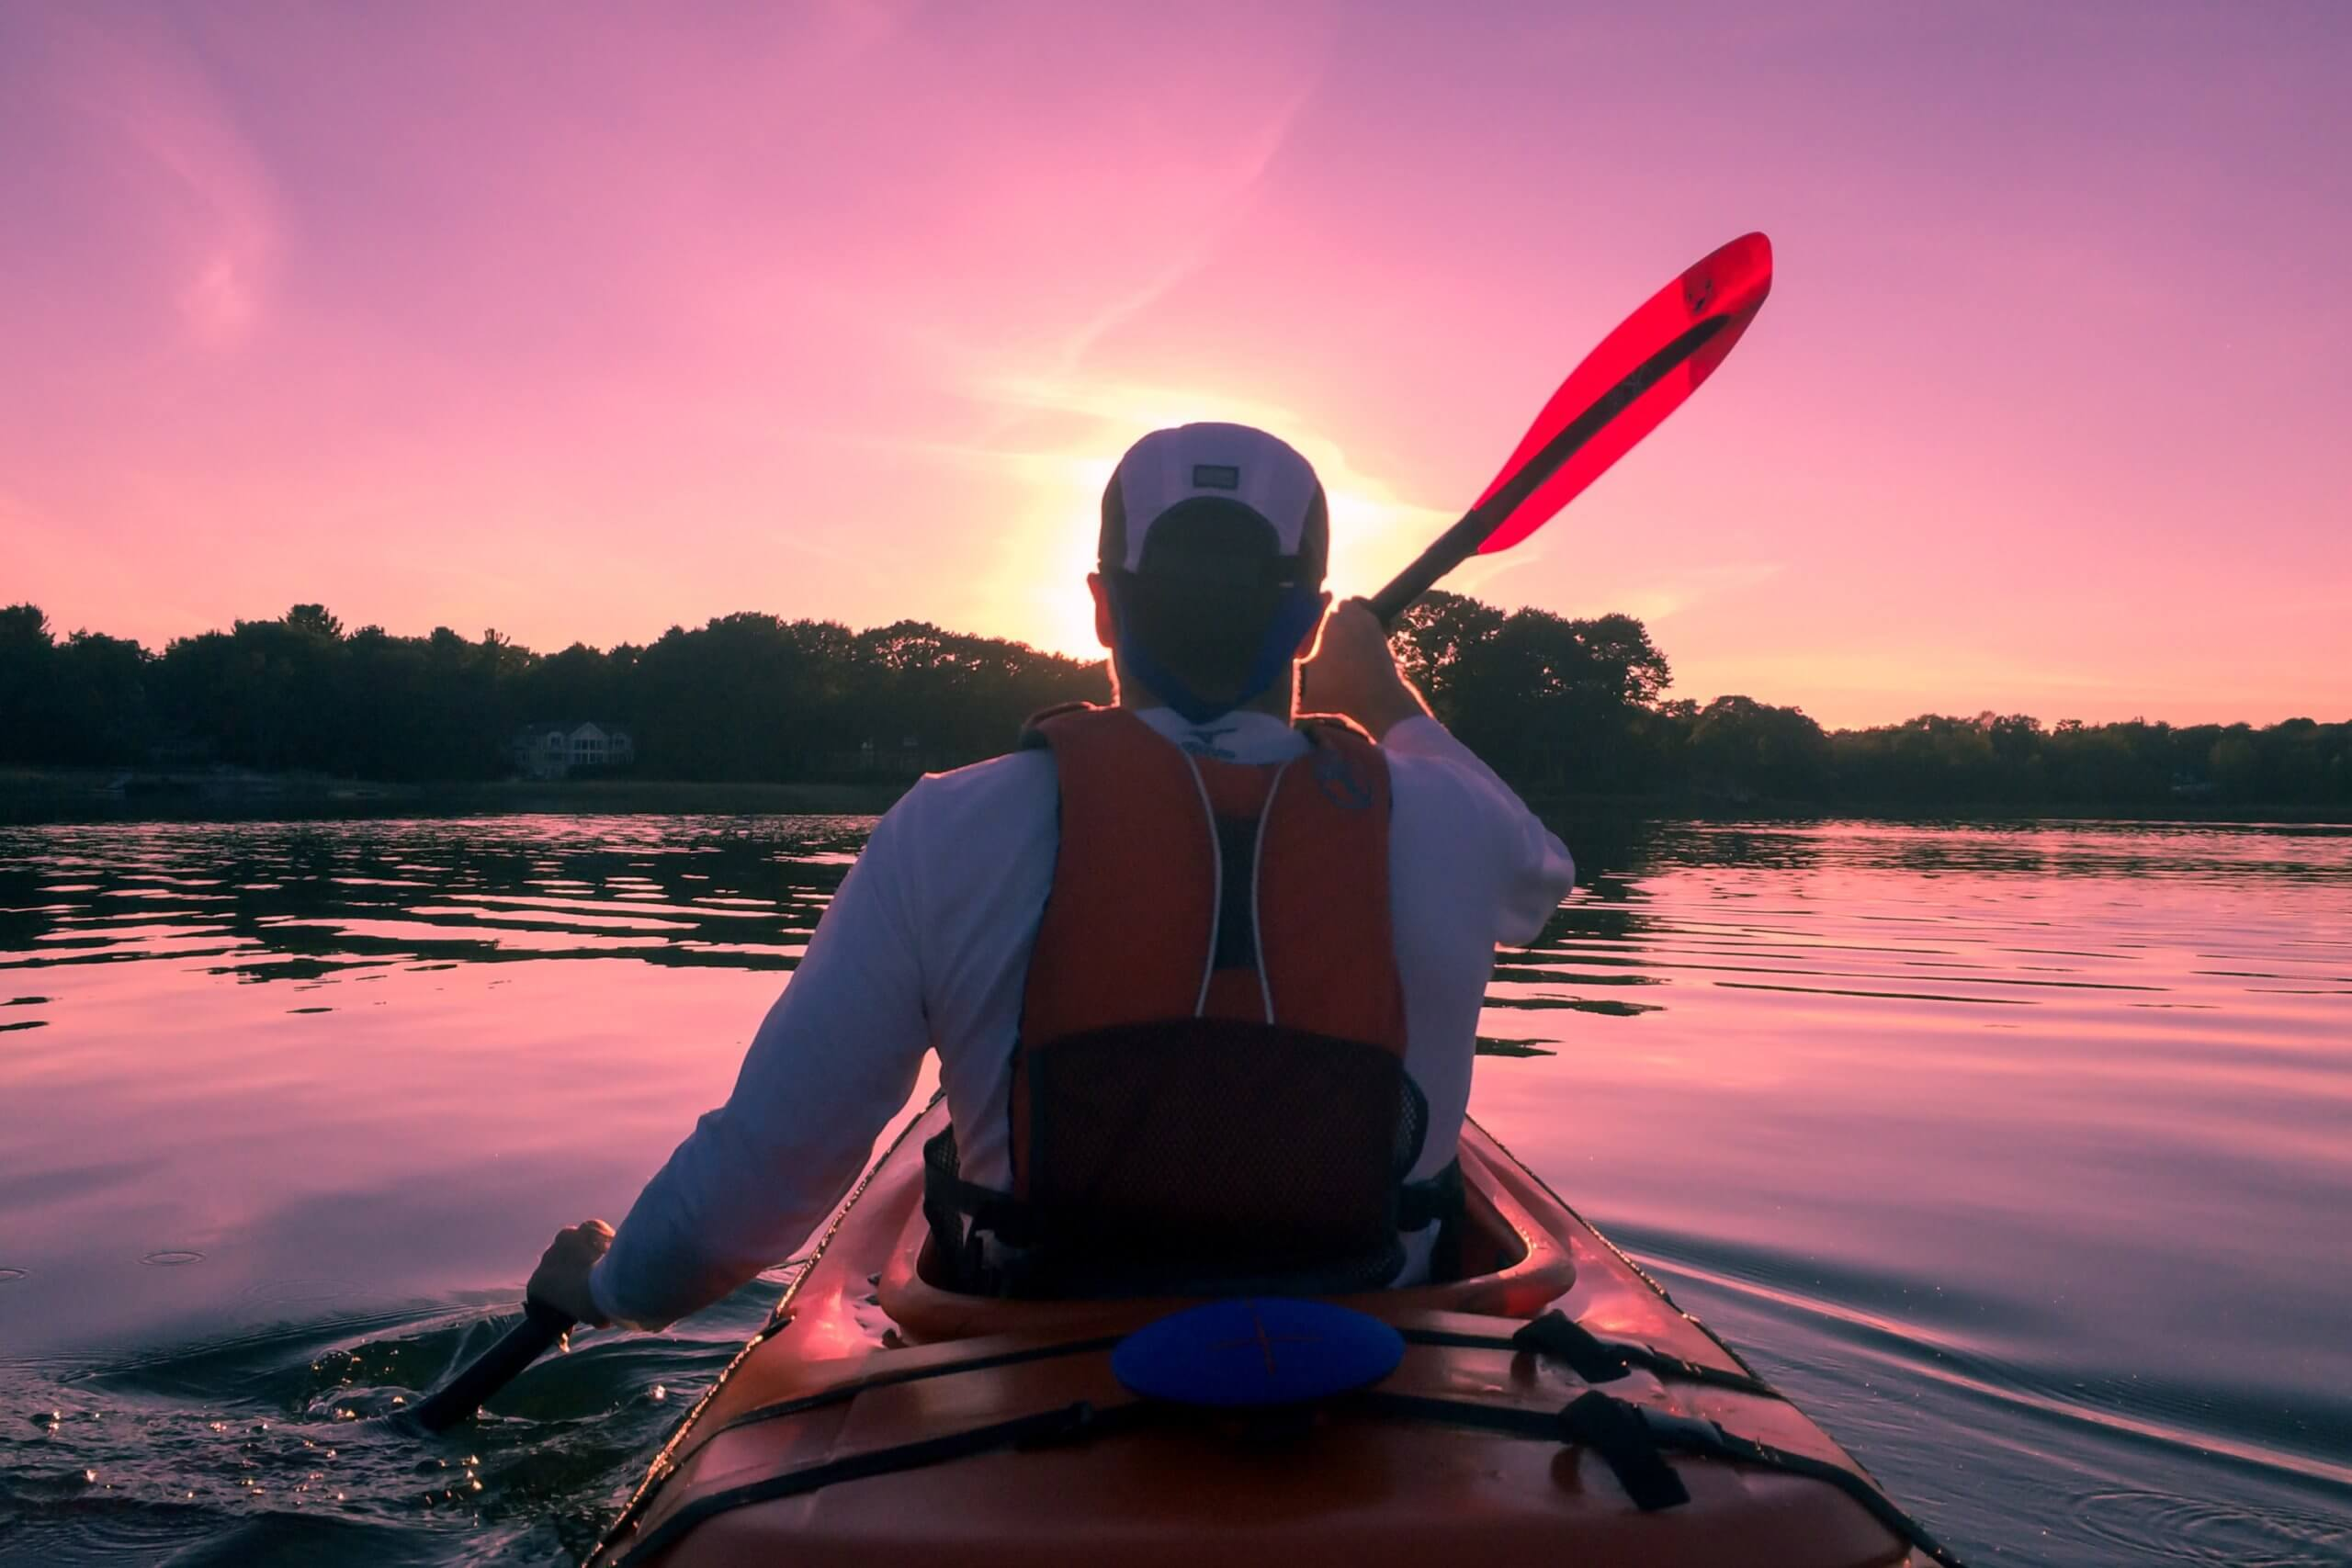 Man Kayaking stock image